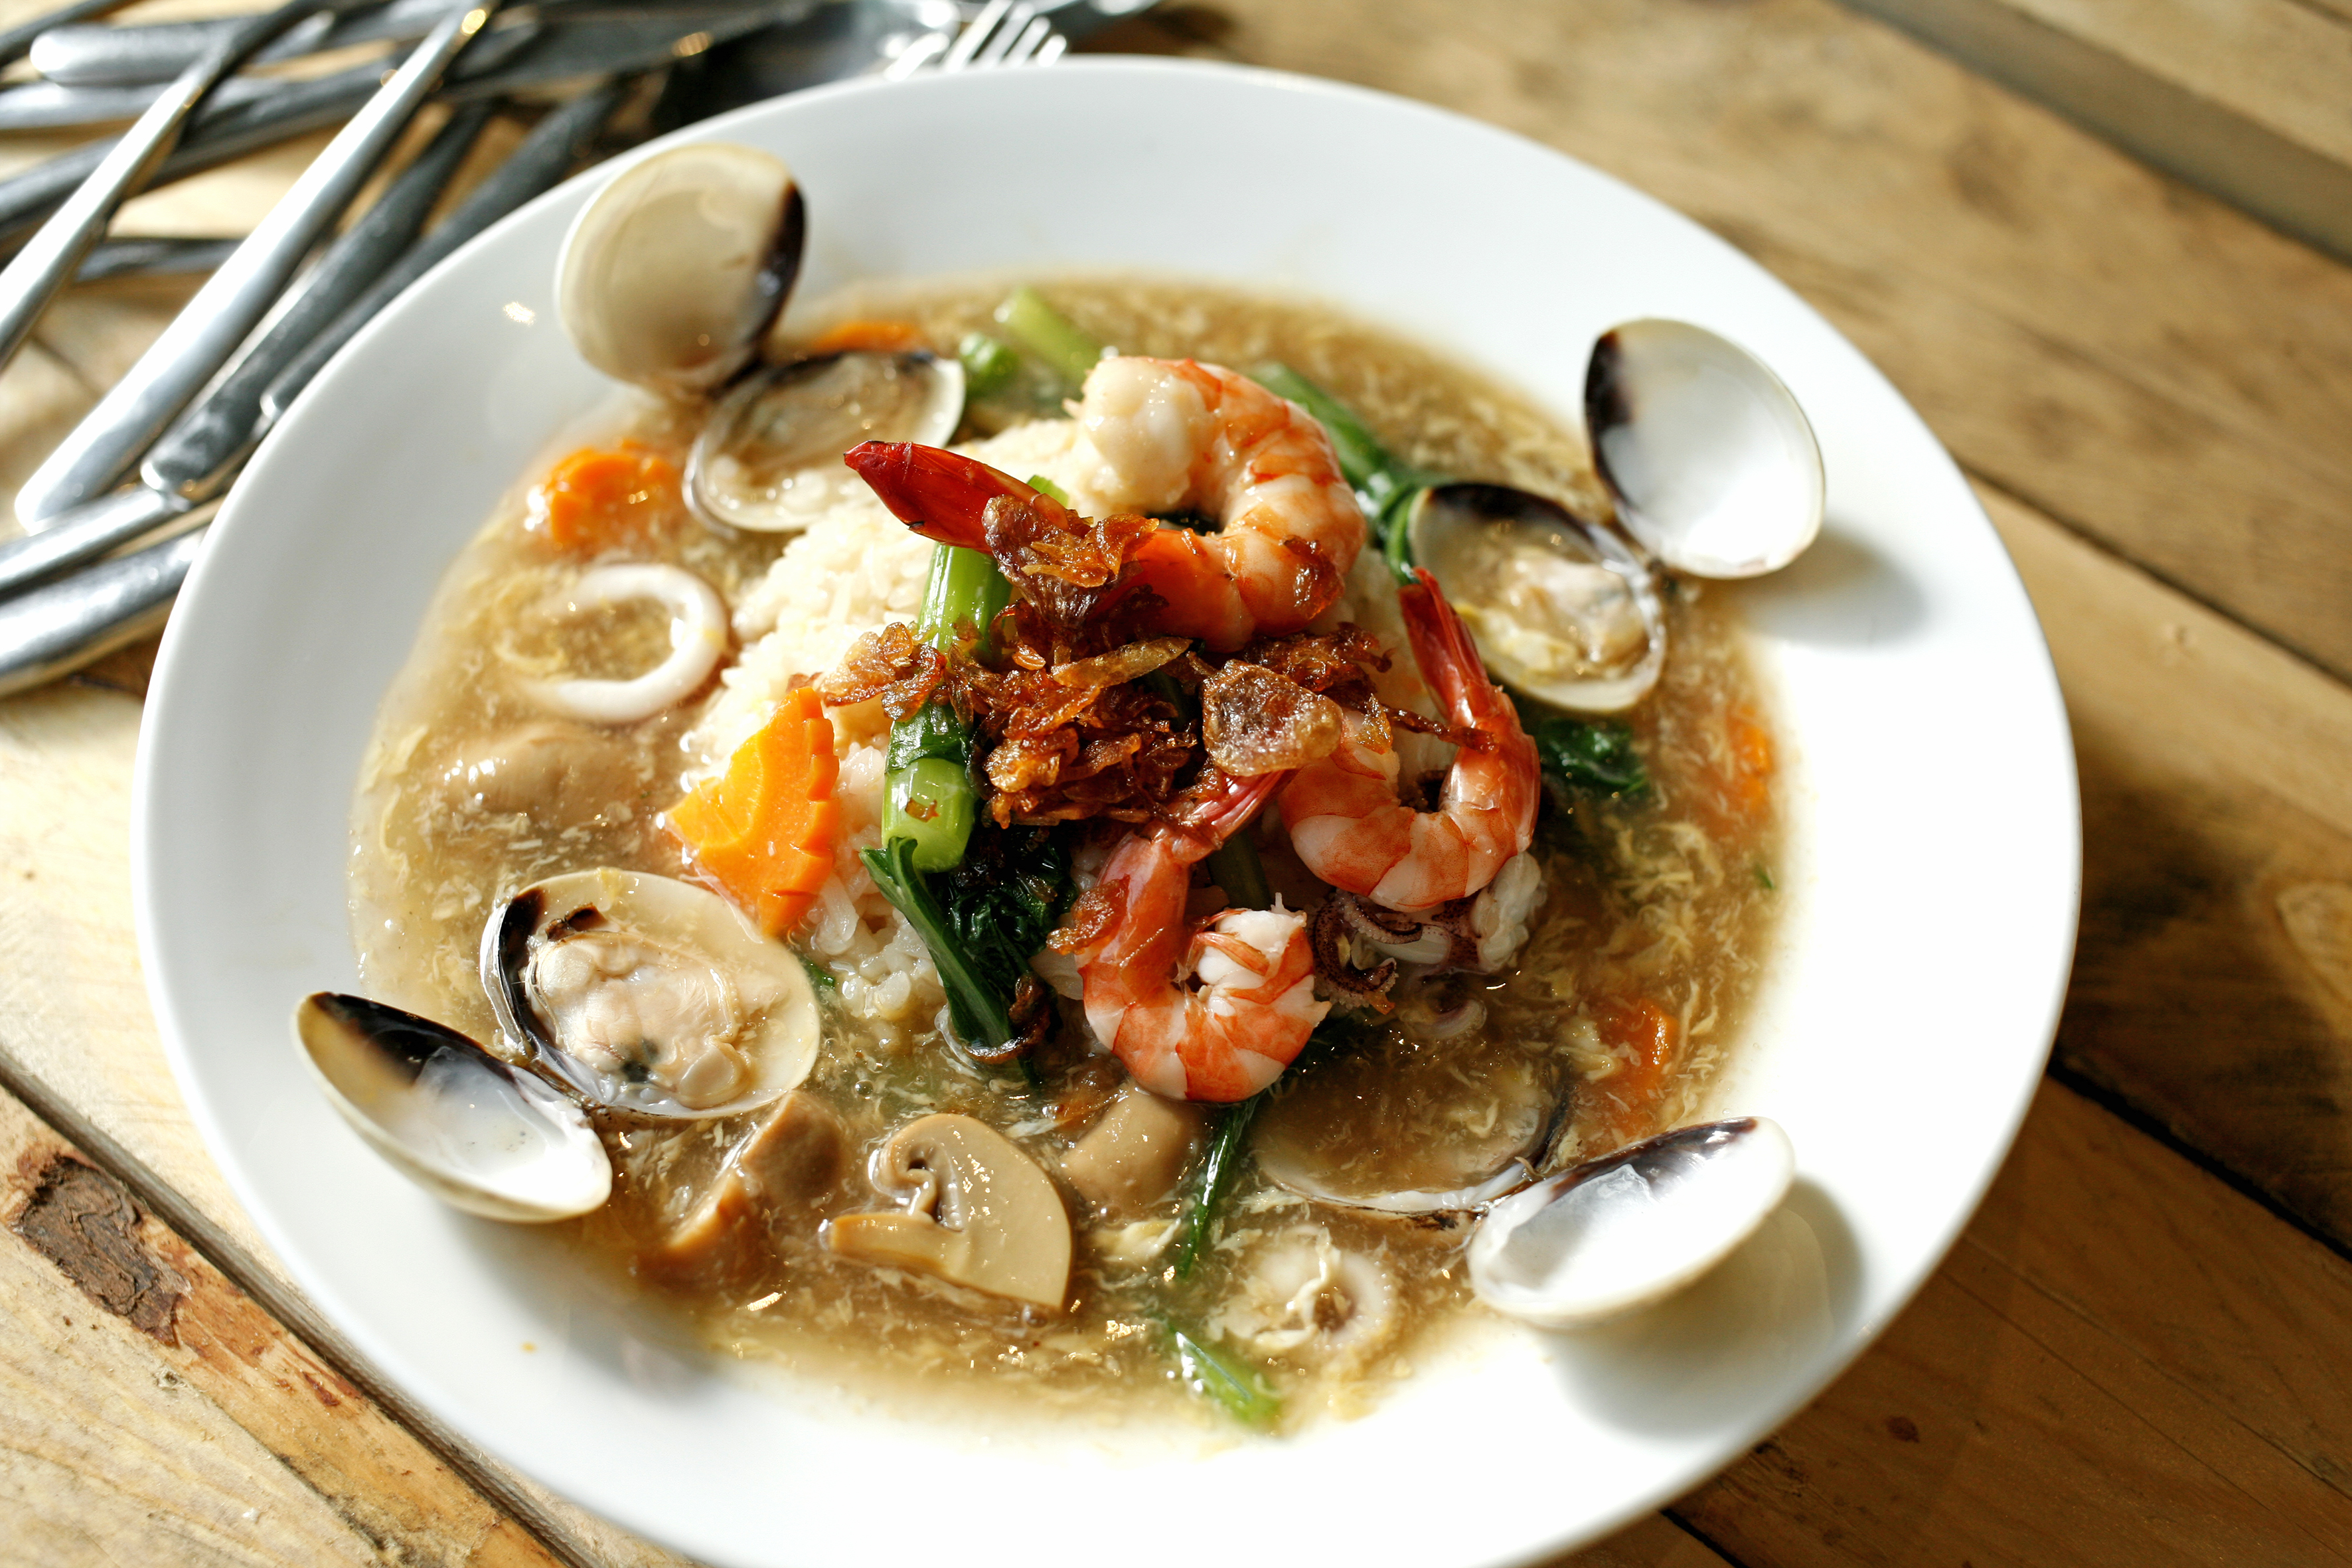 MUI FAN SEAFOOD